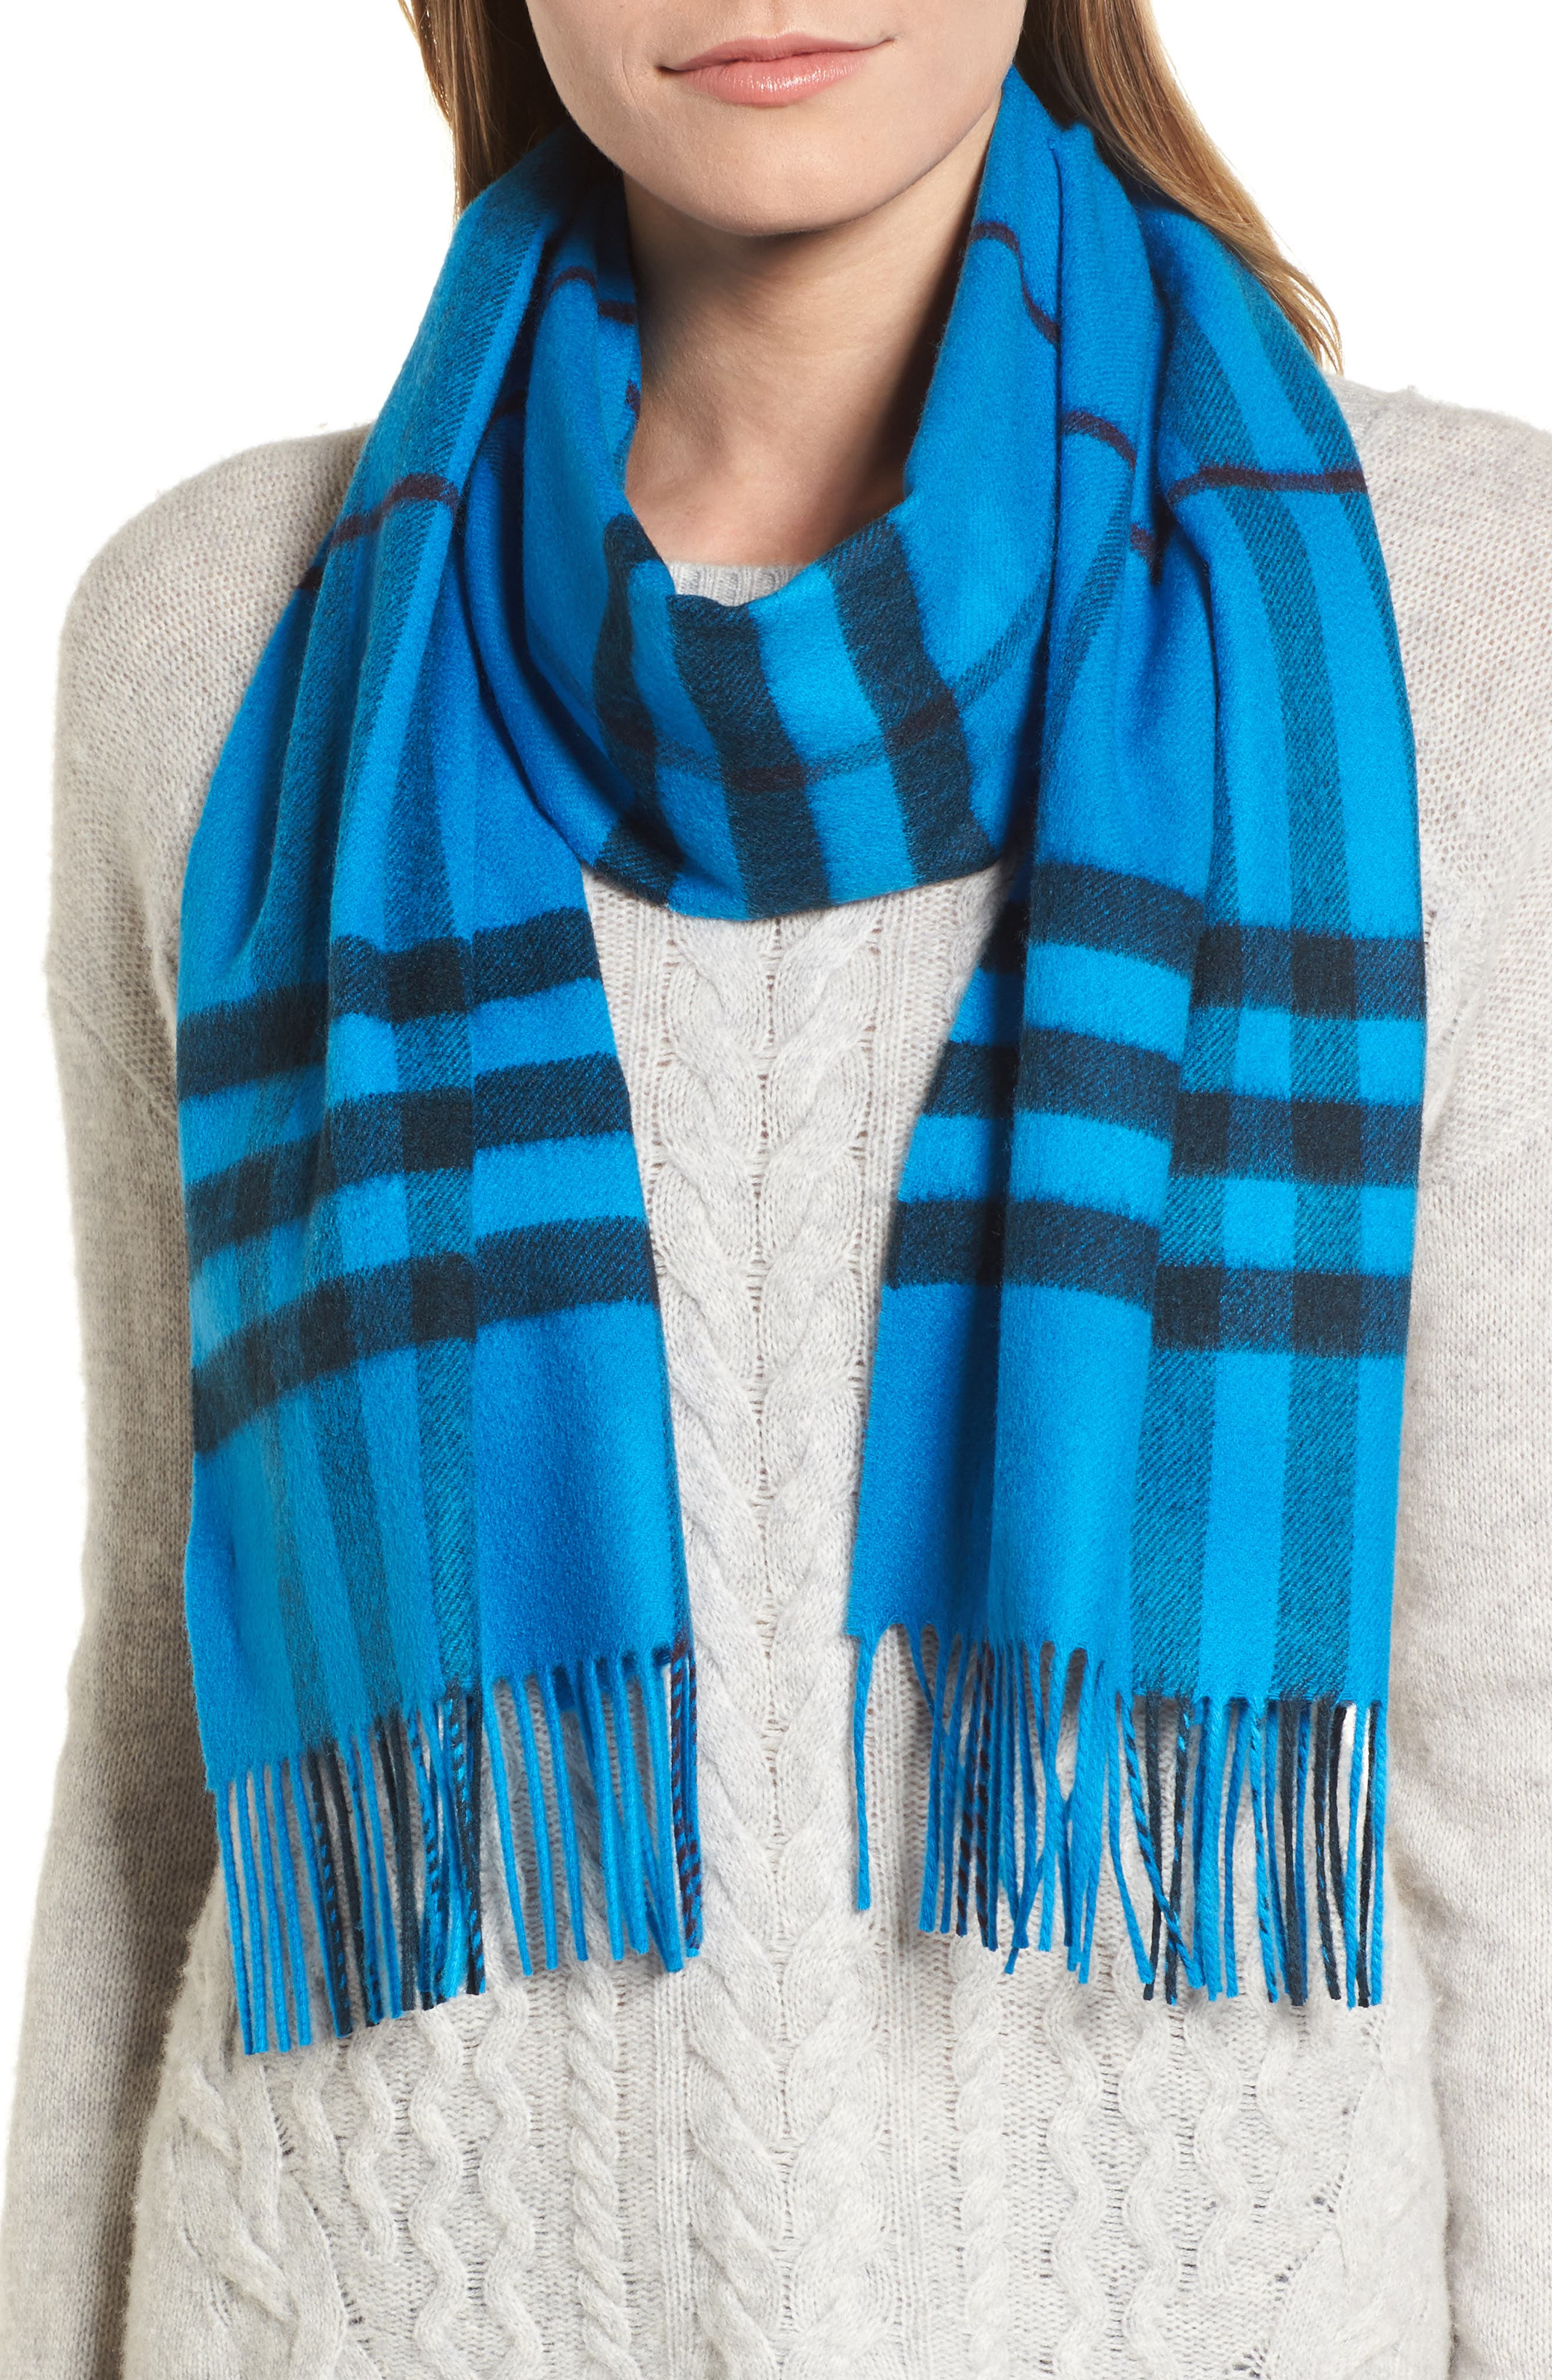 Overdyed Giant Check Cashmere Scarf,                             Alternate thumbnail 3, color,                             Bright Blue